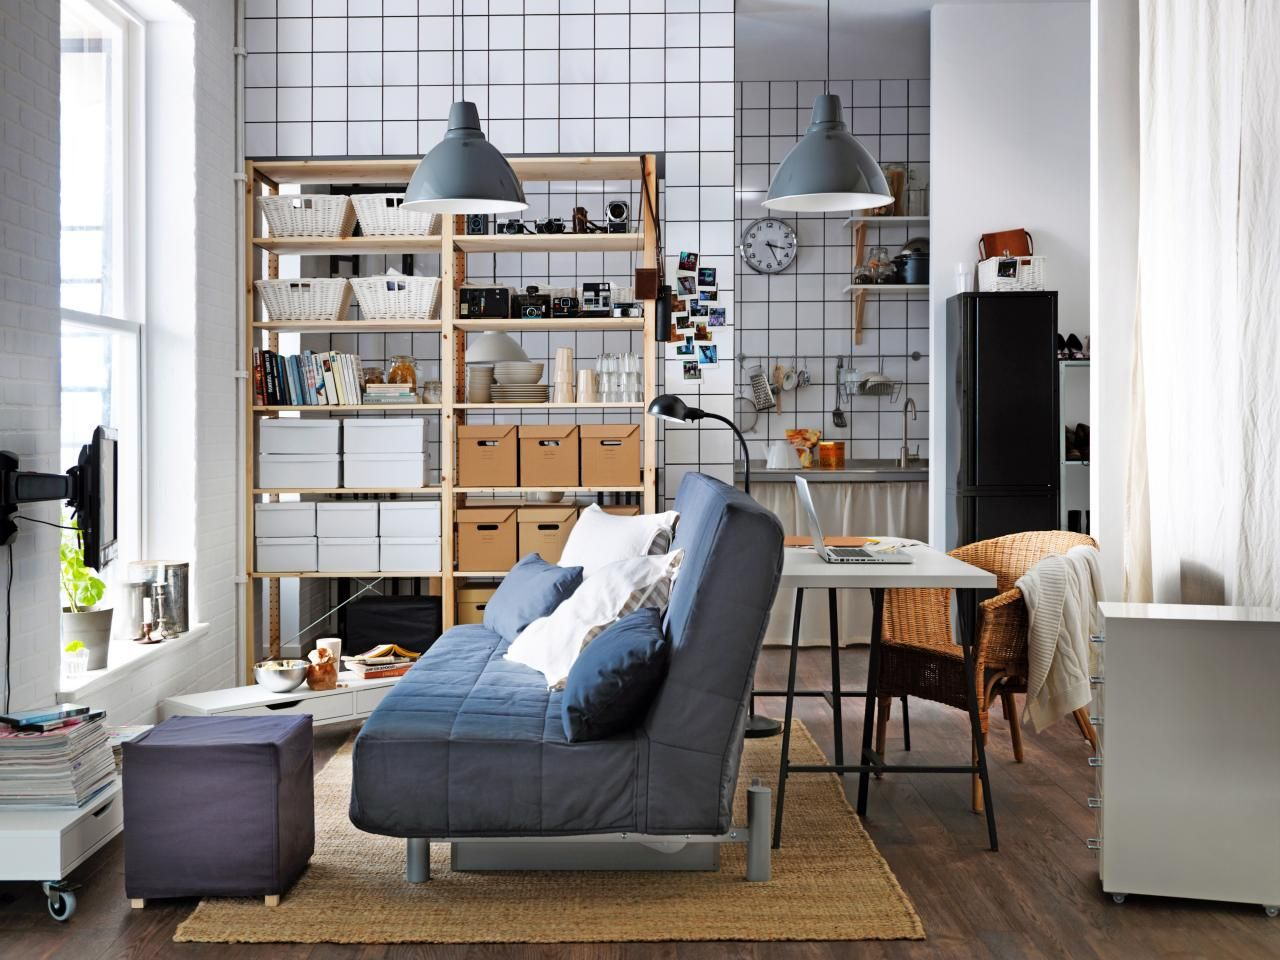 Create The Perfect Small Space With These Ideas  Chic And Functional Dorm Room Decorating